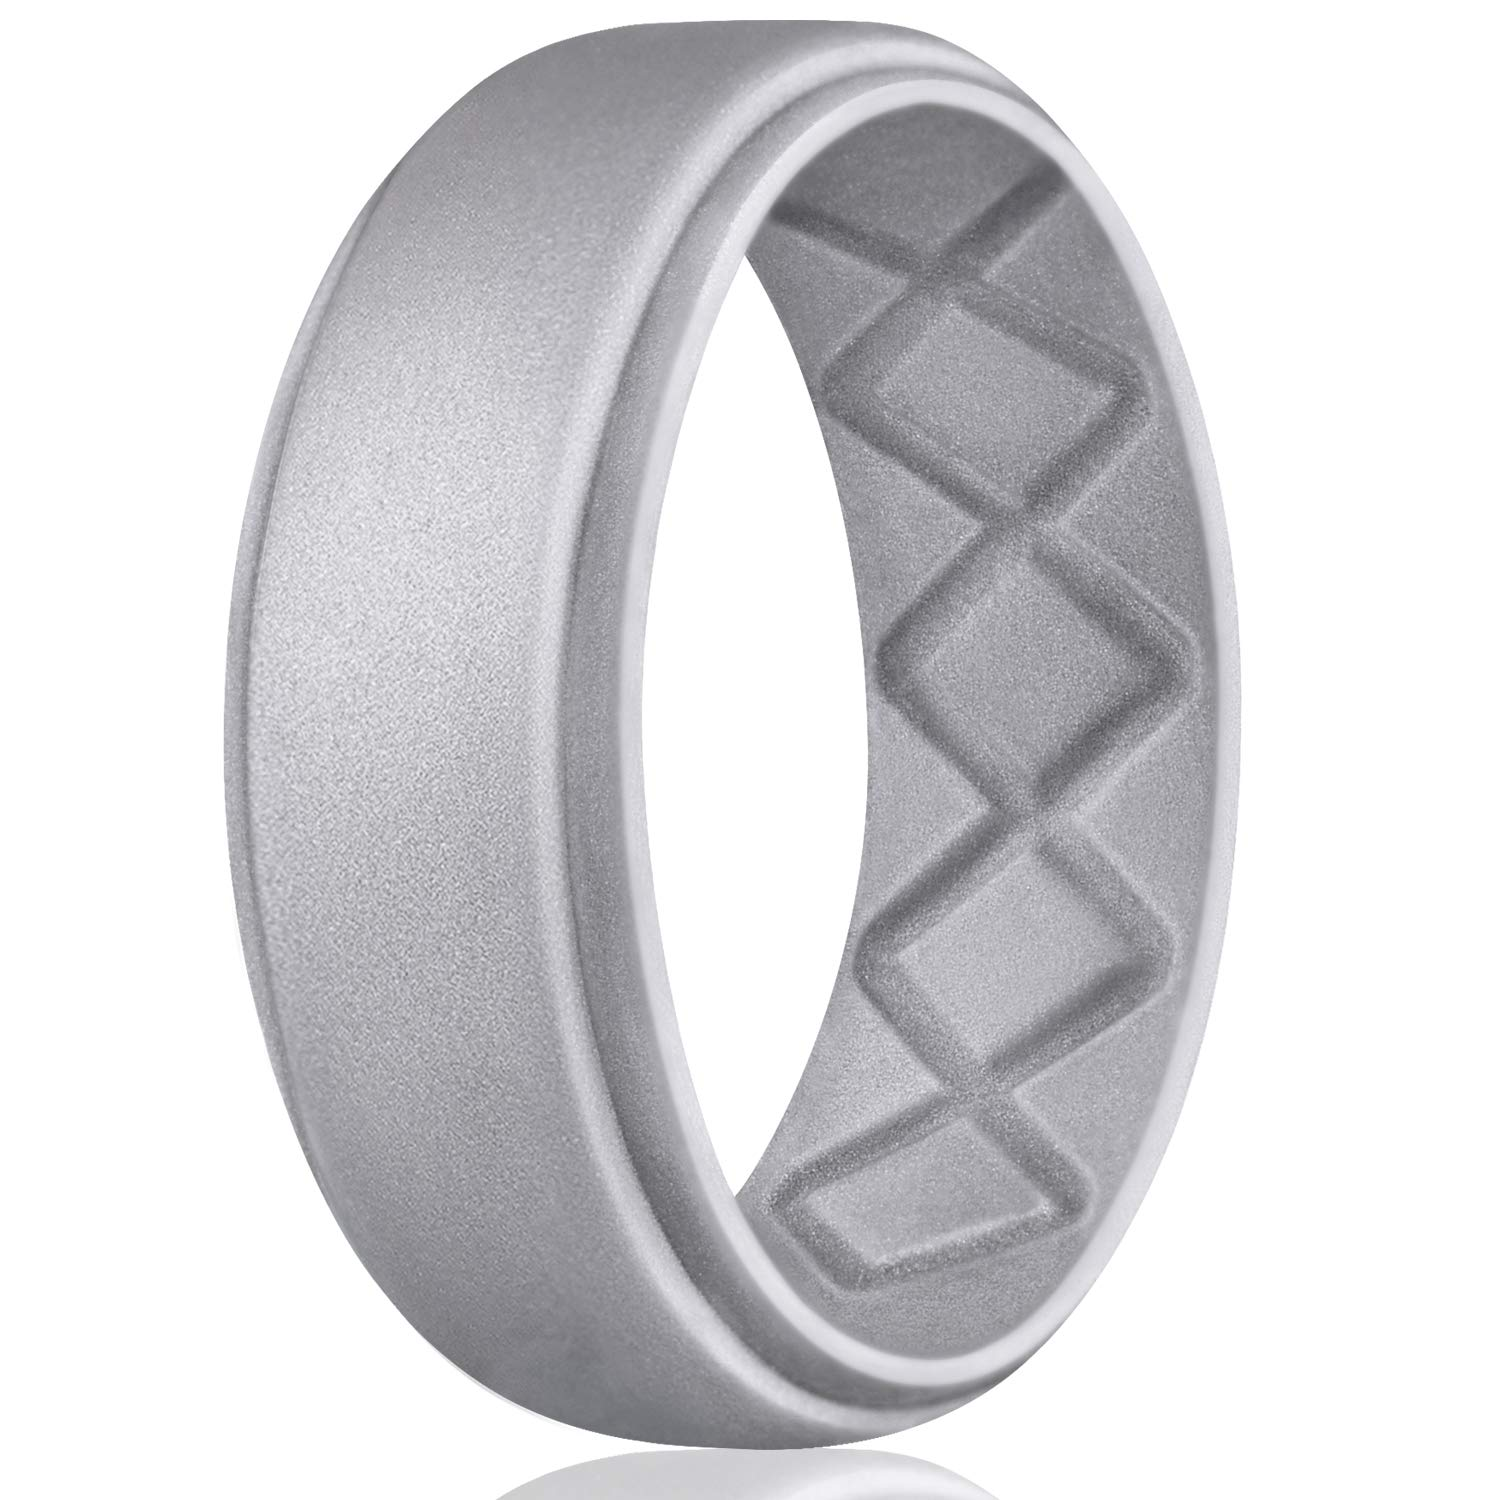 Egnaro Silicone Wedding Ring for Men, Breathable